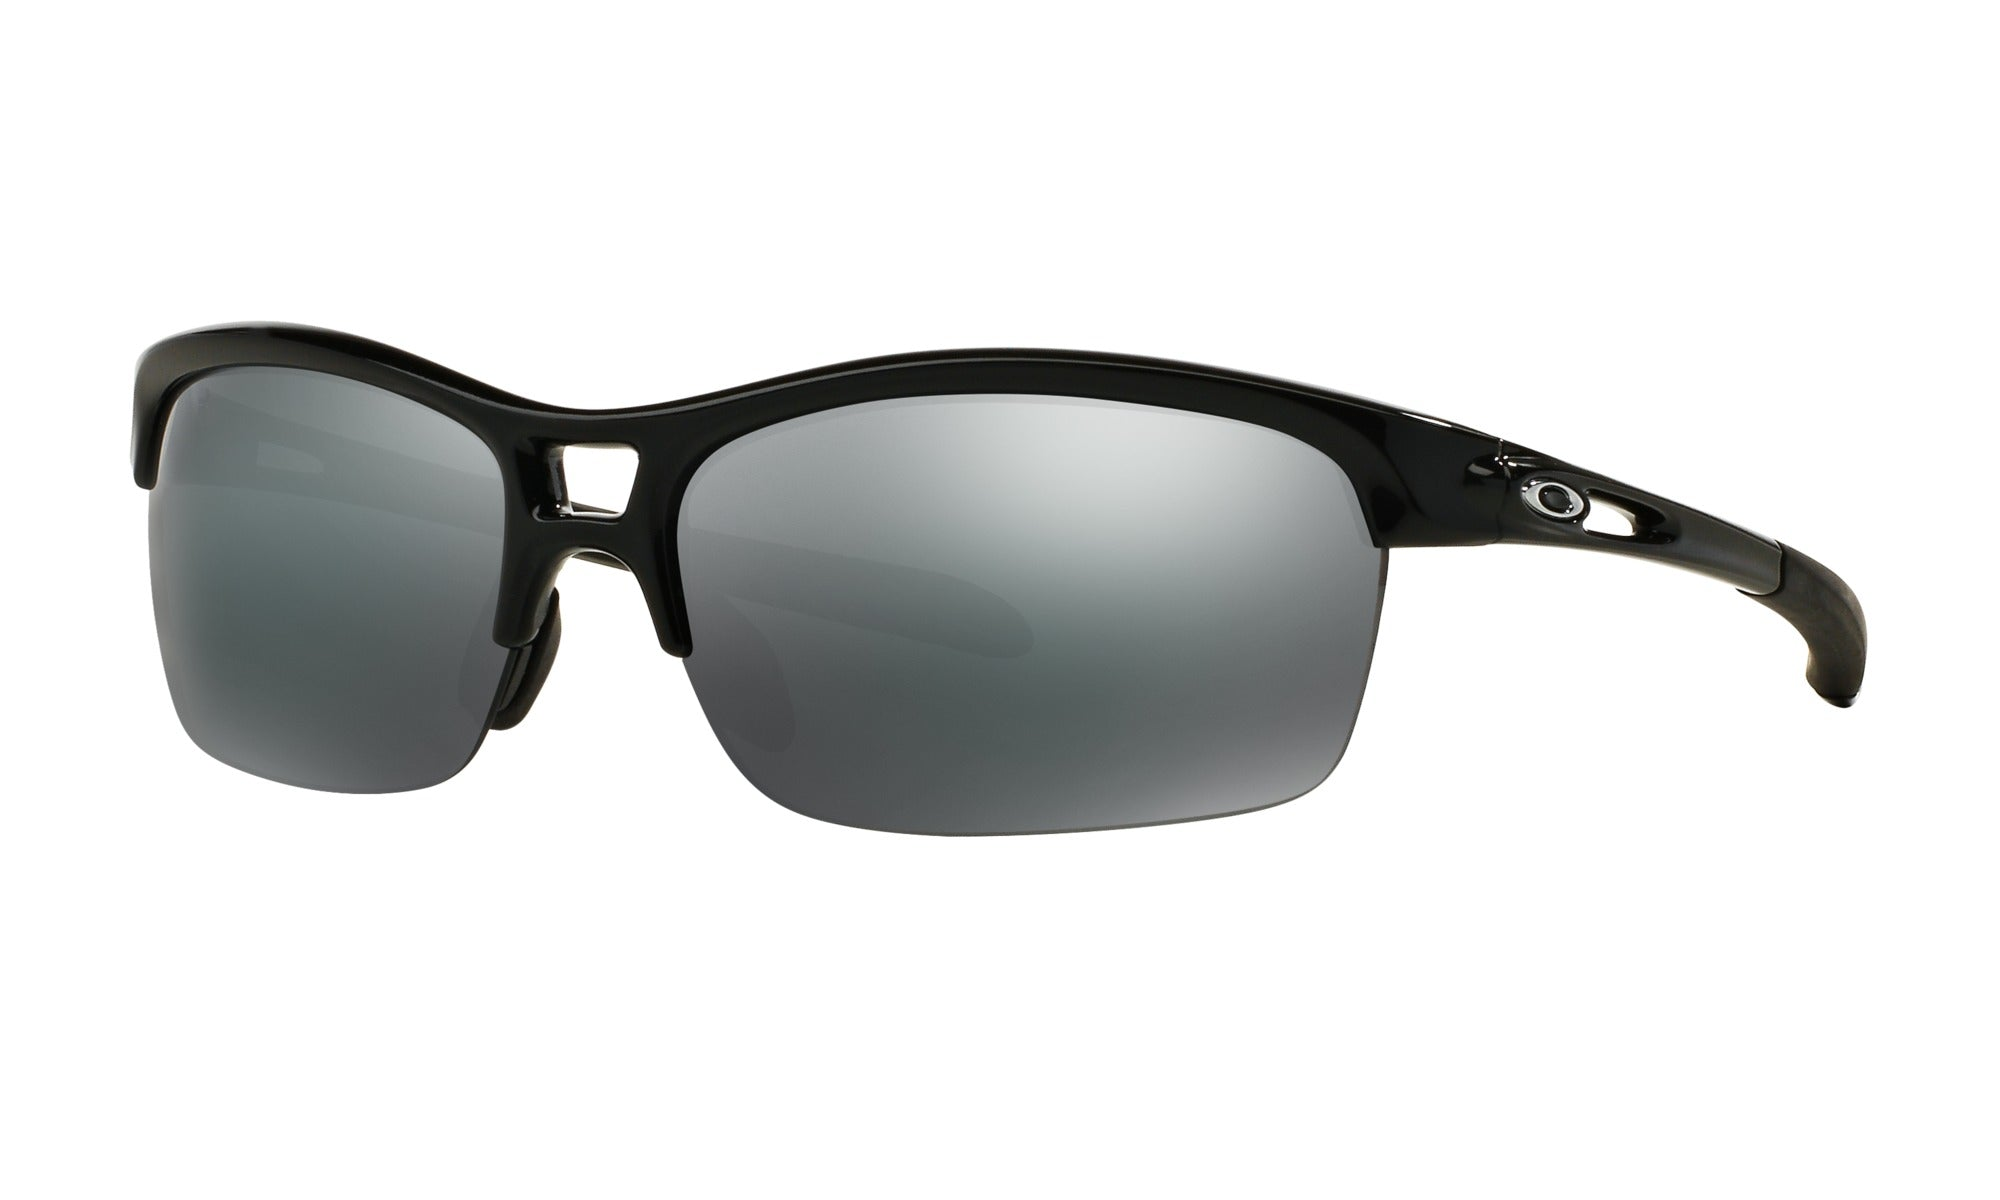 Oakley RPM Squared Iridium Sunglasses (OO9205-01)